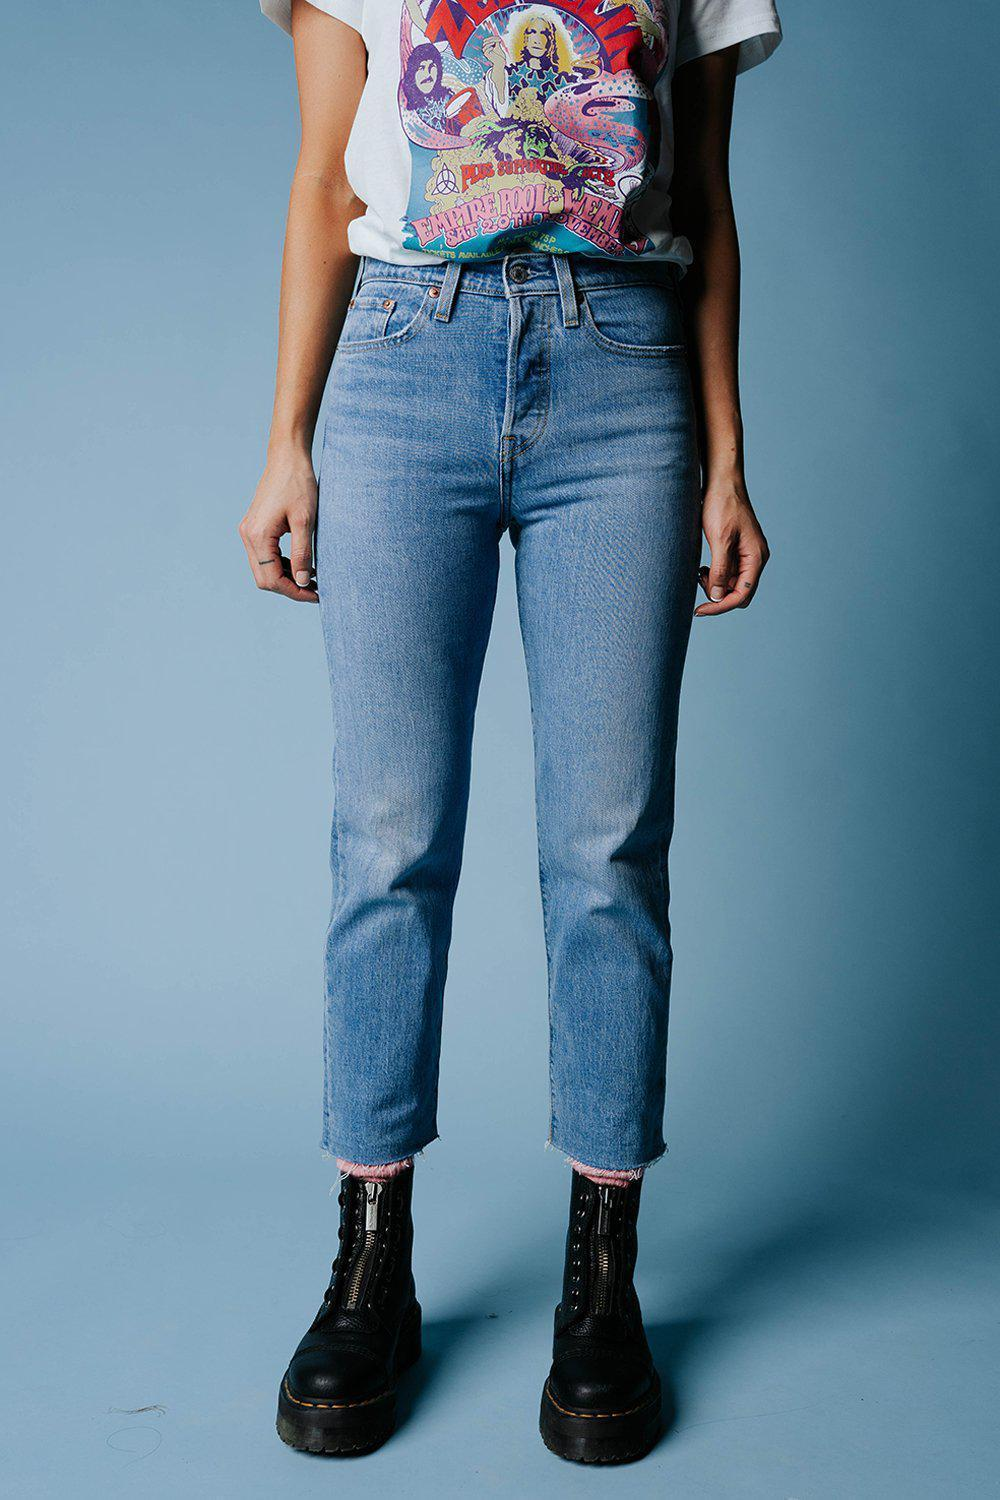 Levi's Wedgie Straight in Tango Hustle, cladandcloth, Levi's.